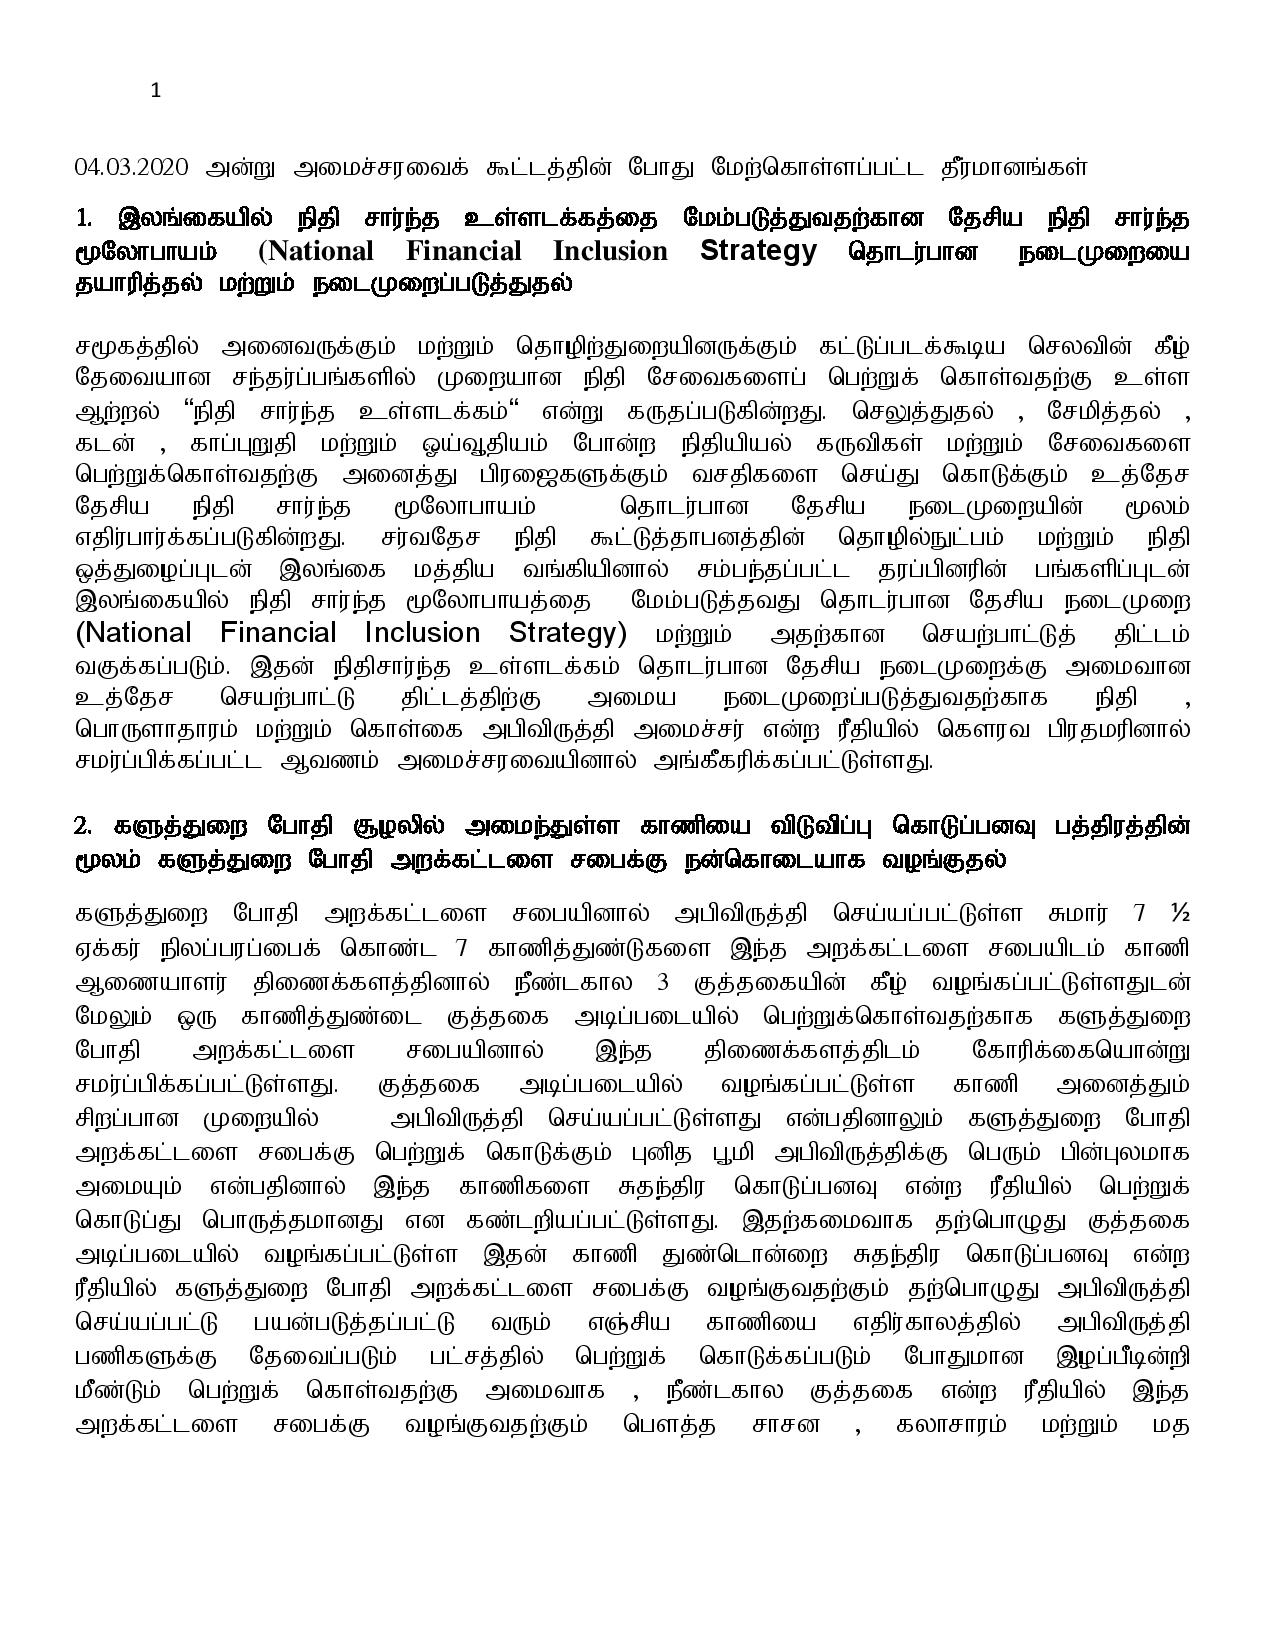 04.03.2020 cabinet Tamil page 001